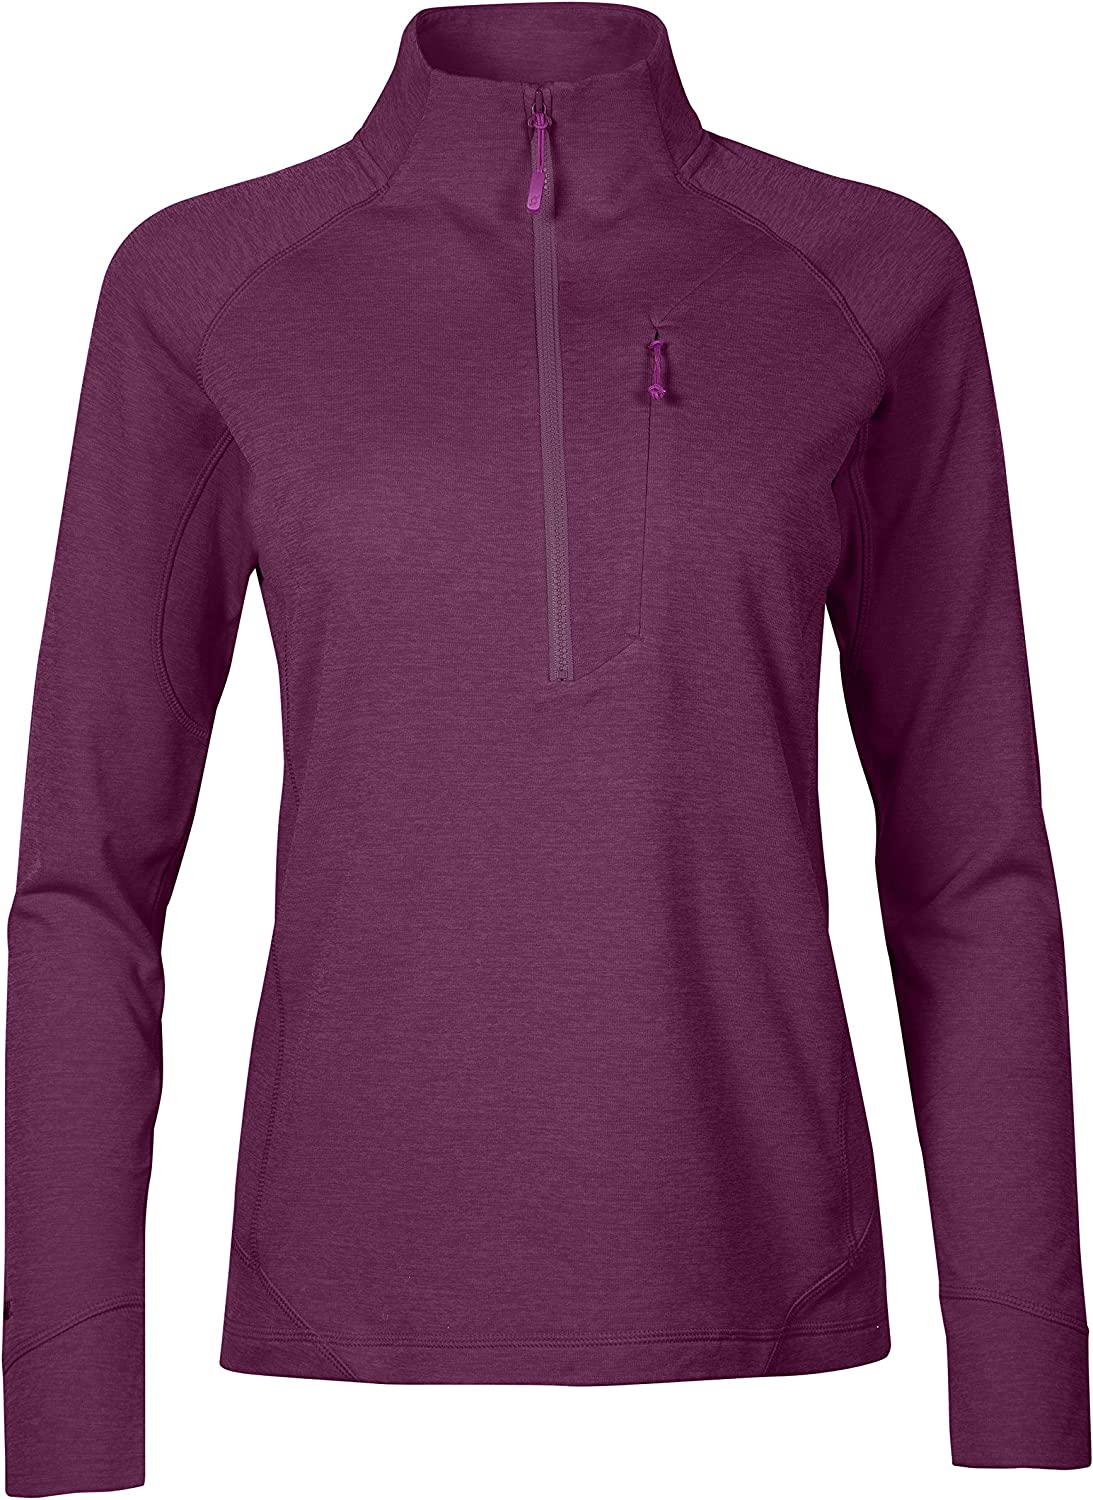 Rab Womens Nexus Pull-on Midlayer Fleece Top Light Weight Stretch 3//4 Zipped Front Chest Pocket